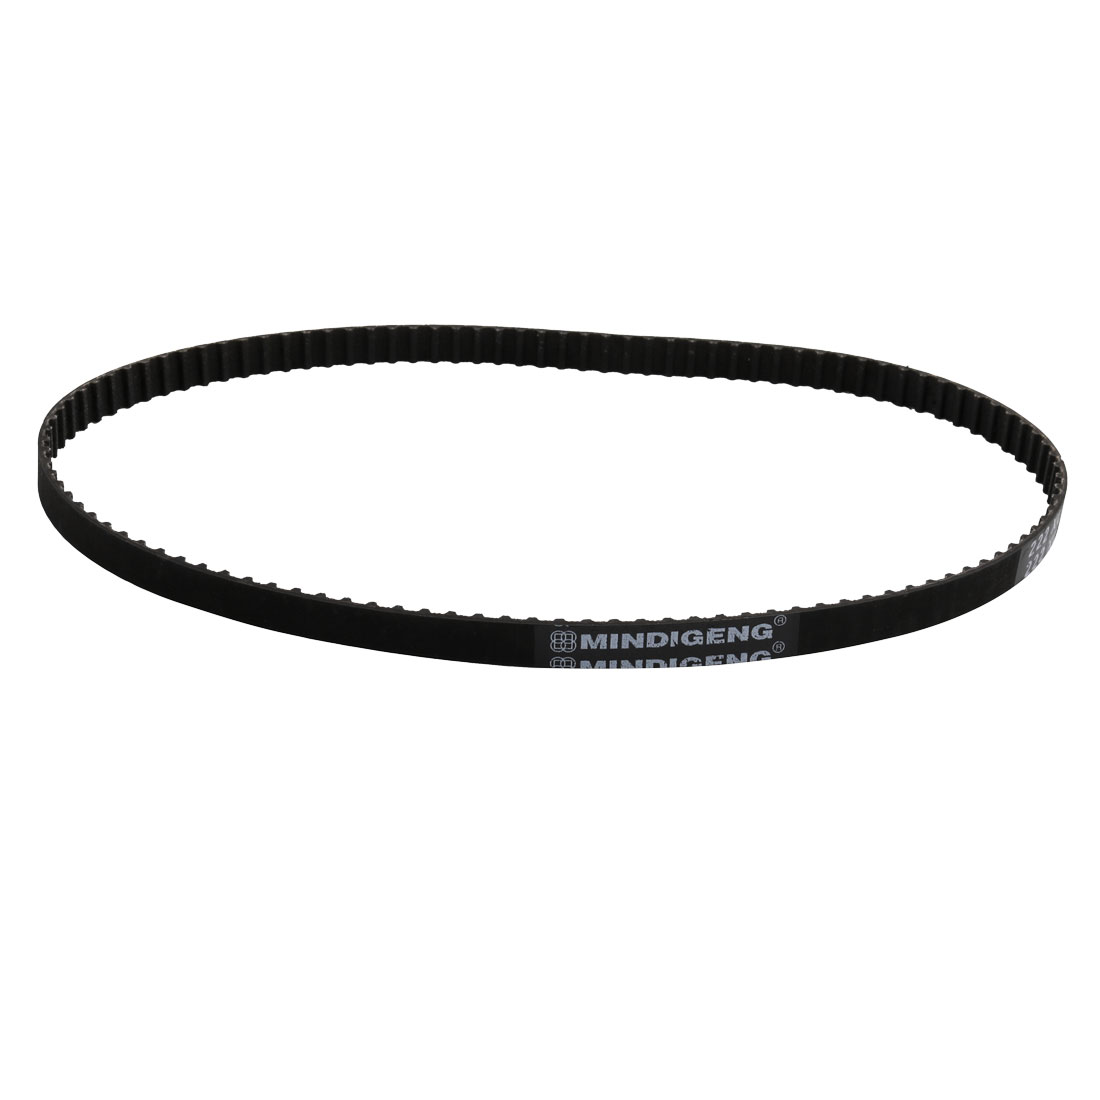 222XL 111 Teeth 10mm Width 5.08mm Pitch Stepper Motor Rubber Timing Belt Black